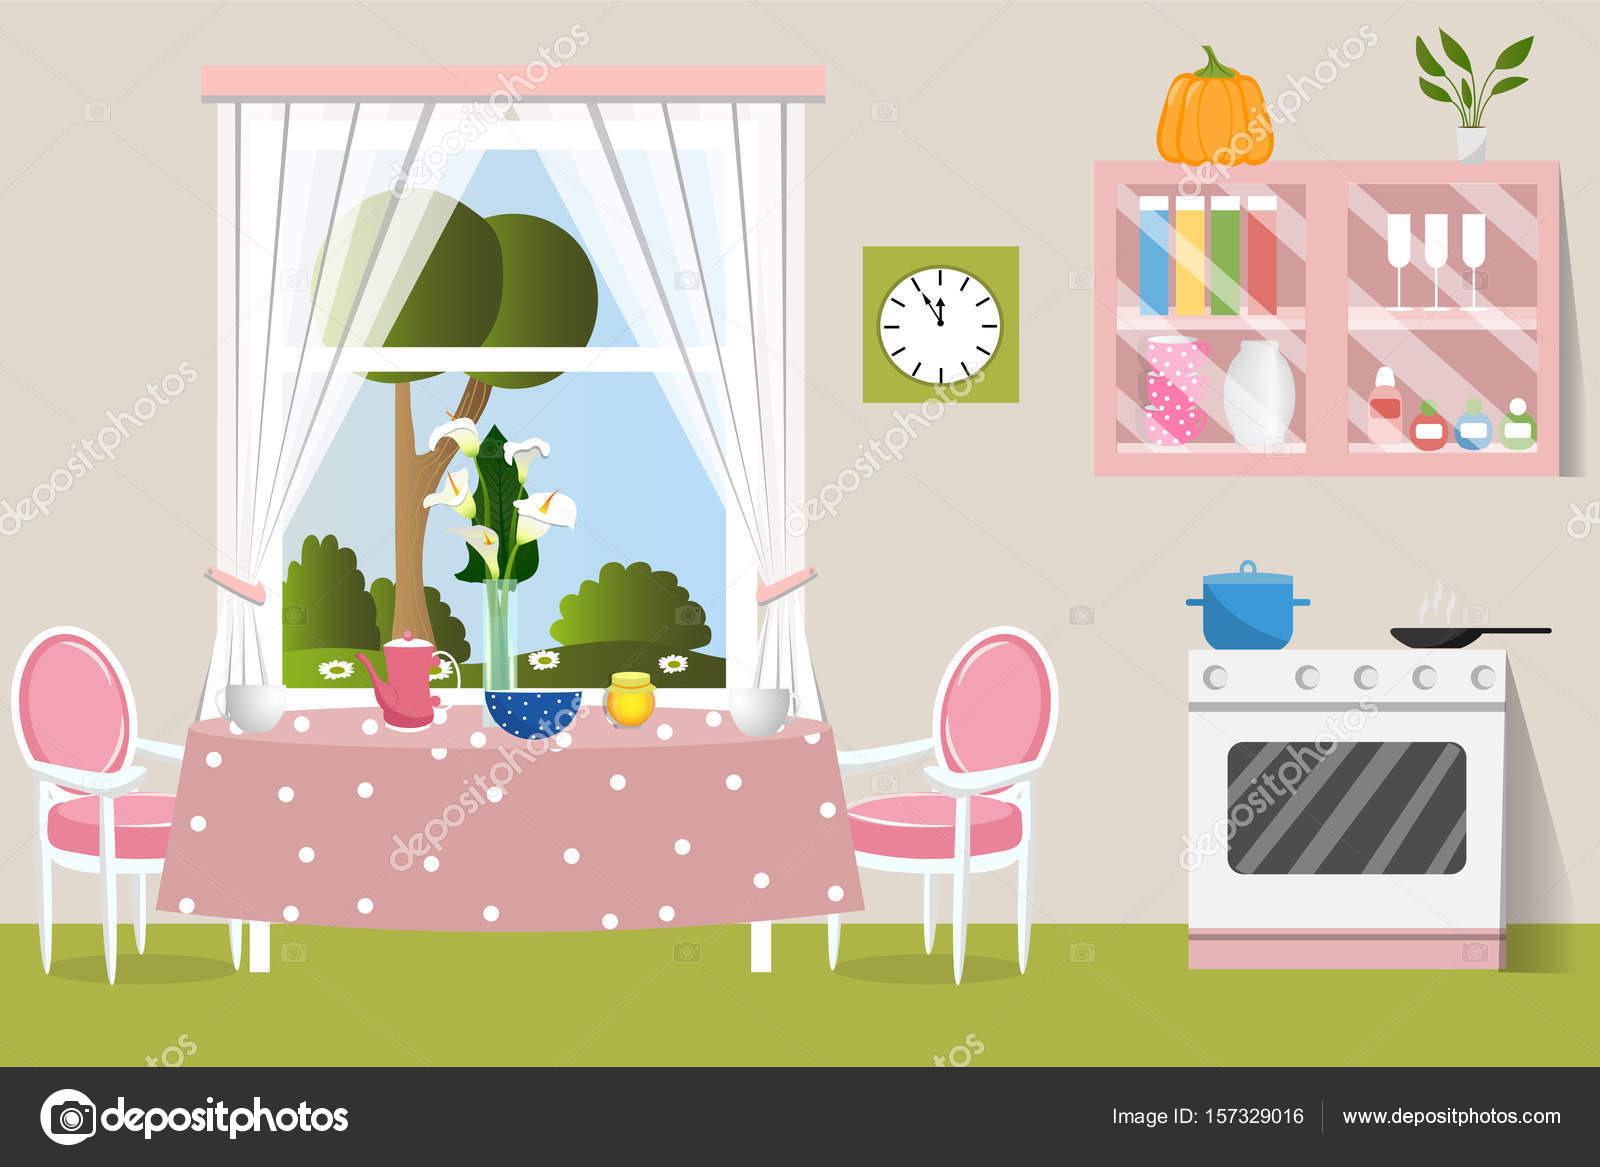 The Interior Dining Room Flat Design Cartoon Vector Illustration By Molnia26